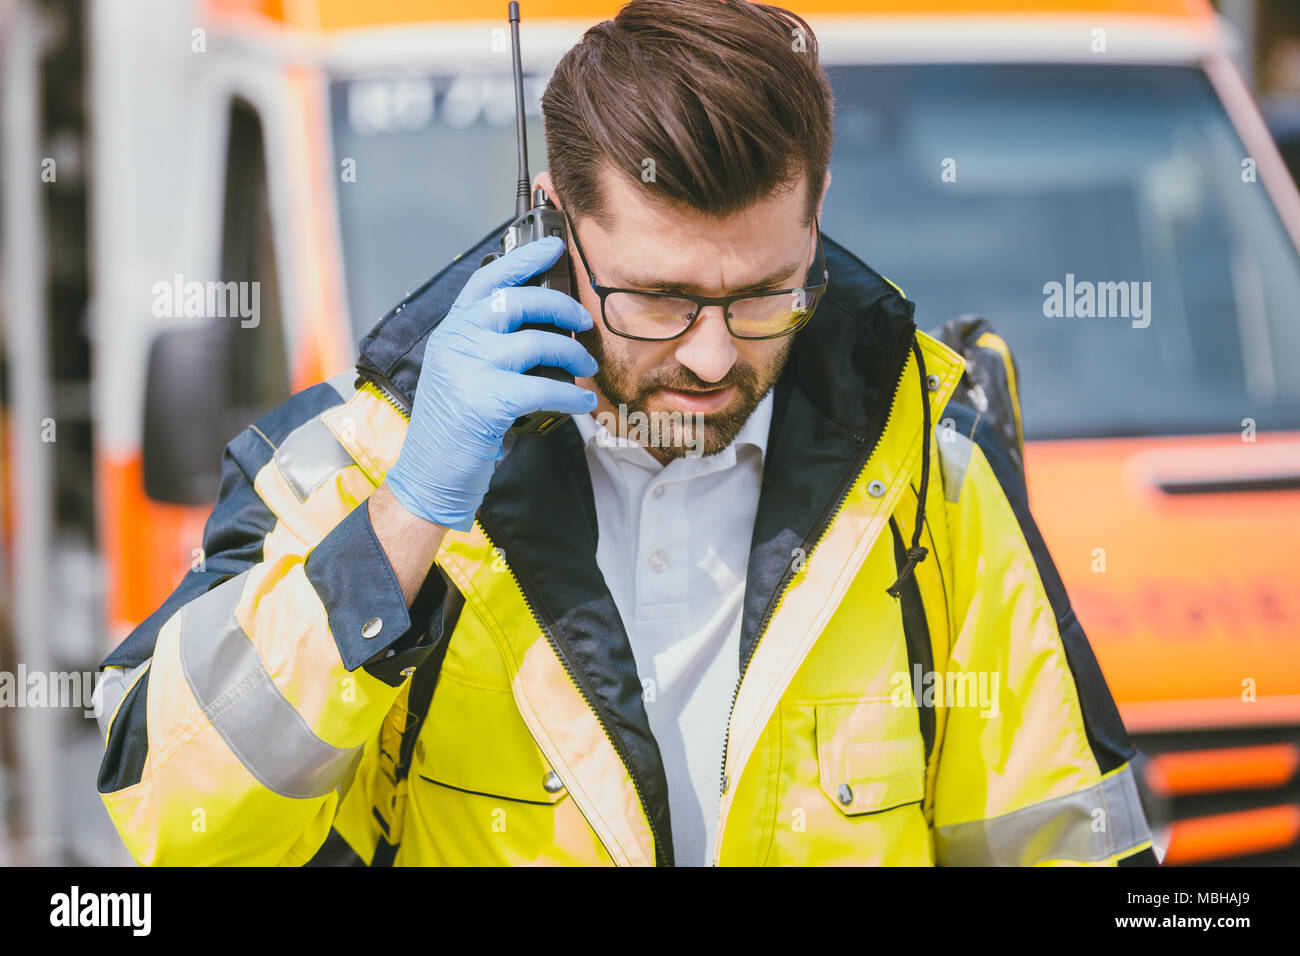 Medic talking to headquarter via radio in front of ambulance - Stock Image